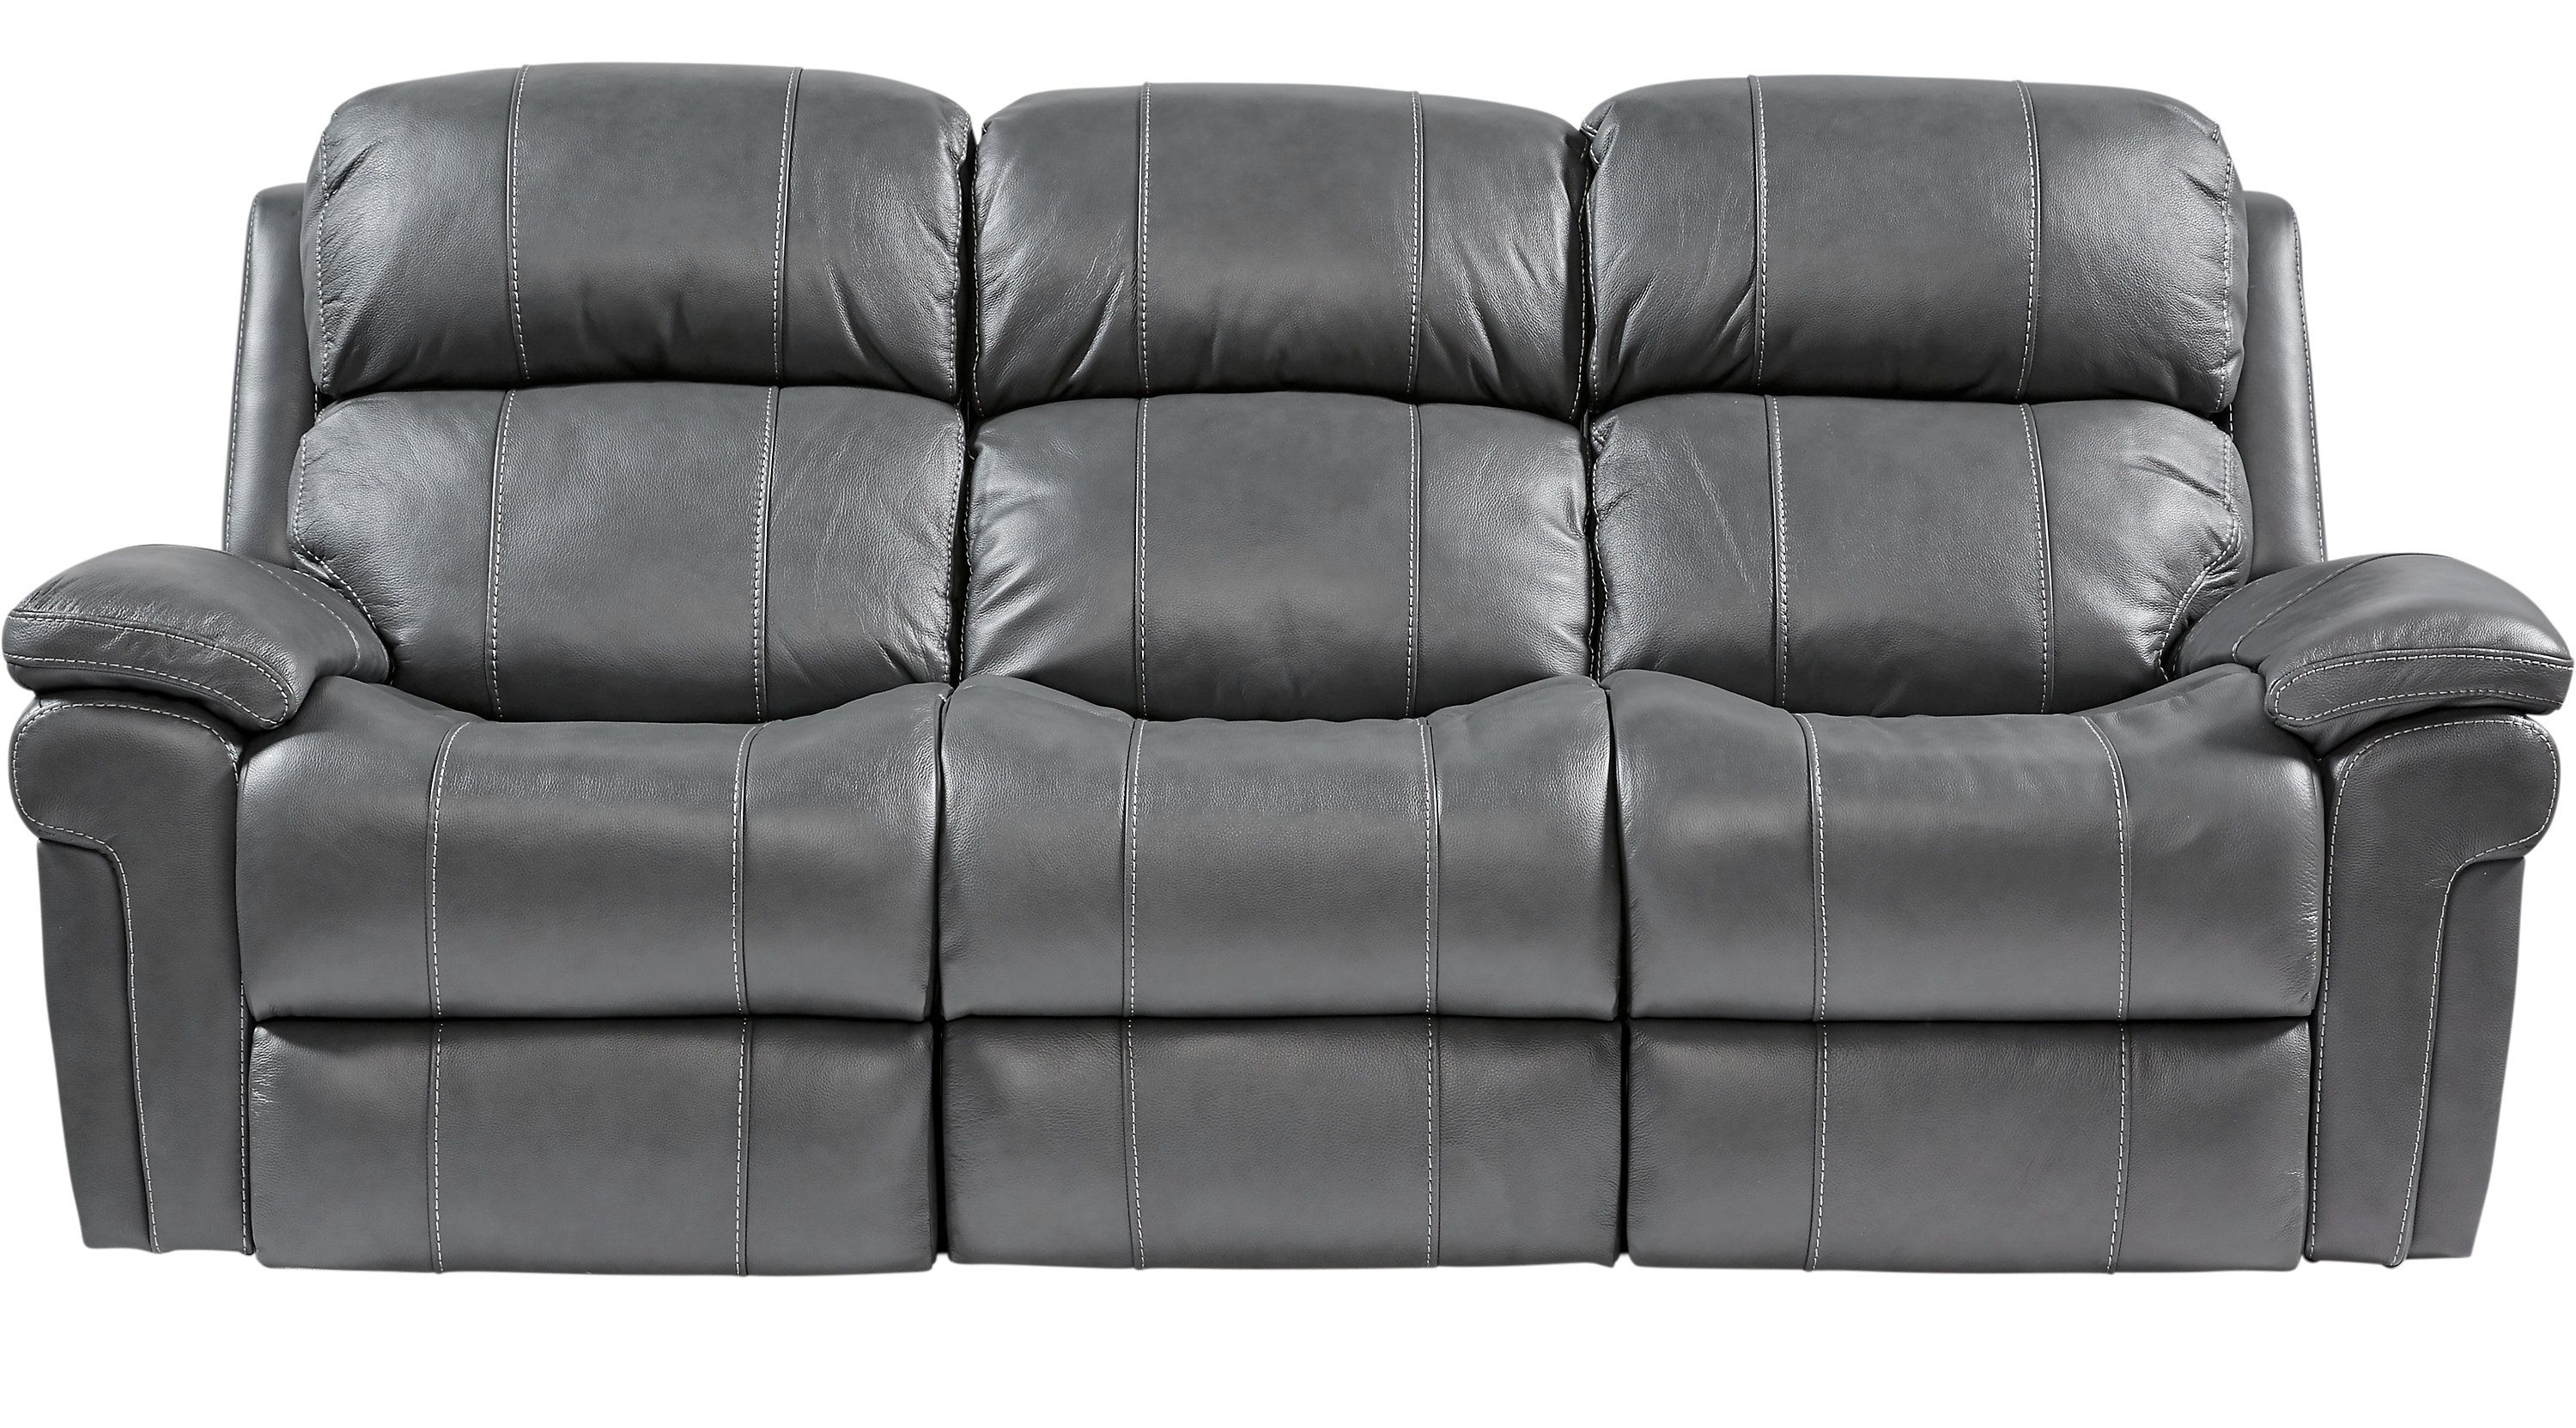 Sofas Rooms To Go Trevino Smoke Leather Reclining Sofa